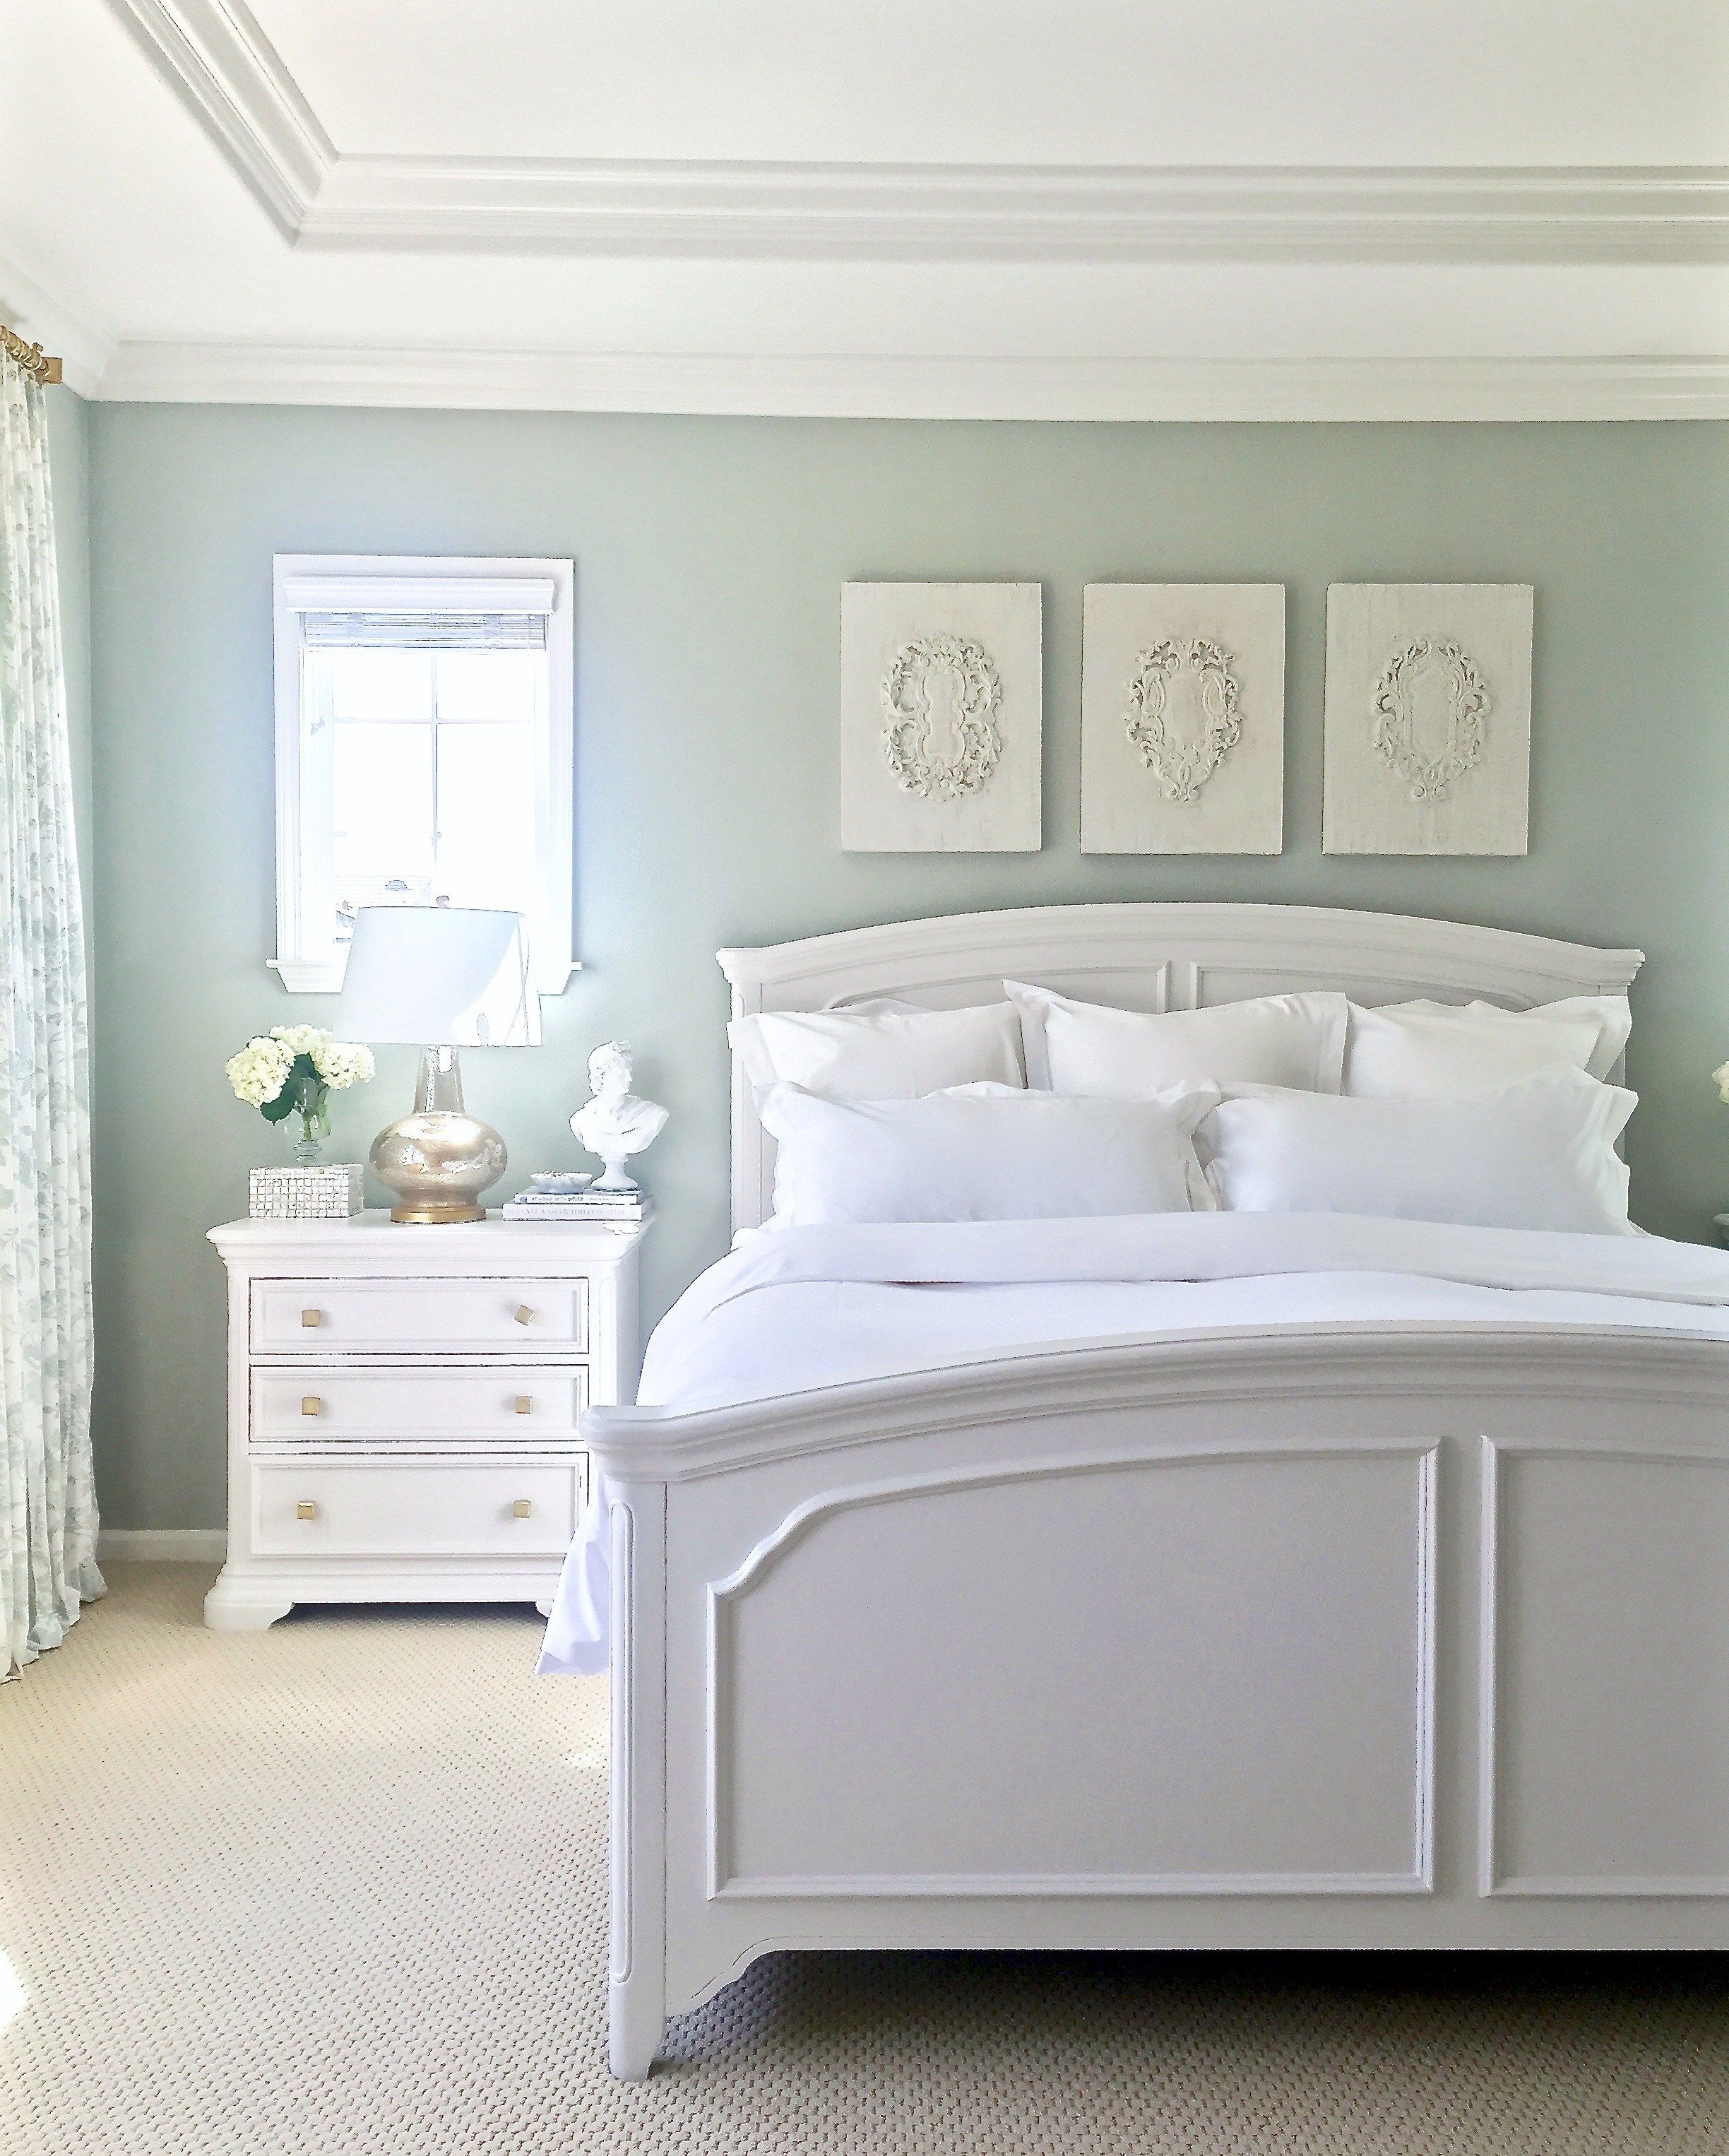 Sage (gray/green/blue tranquil spa-like feel), furniture is painted  Sherwin Williams (premium in Satin Finish) Elder White, Ballard Jardin  Toile drapes,